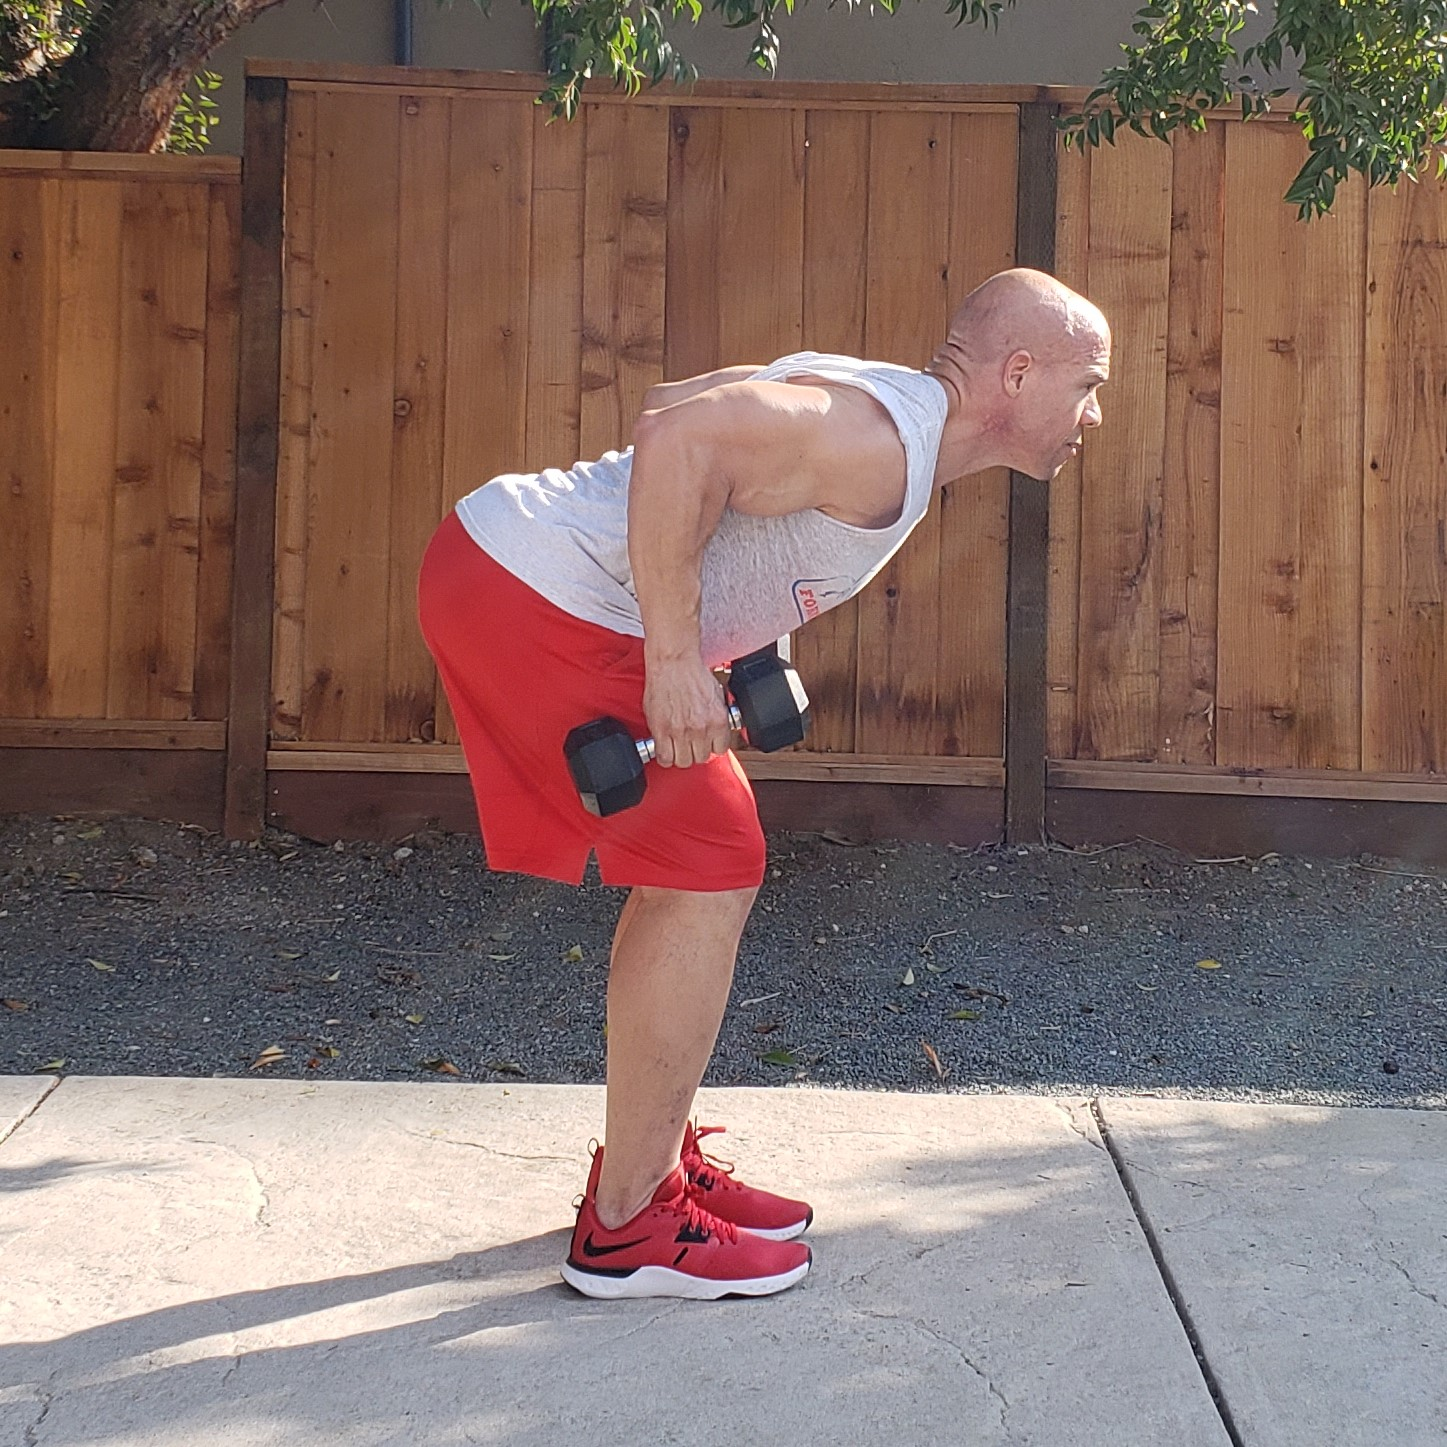 6 row deadlift 15 x 15 x 15 Workouts For Older Men HOME Gym Workout #4